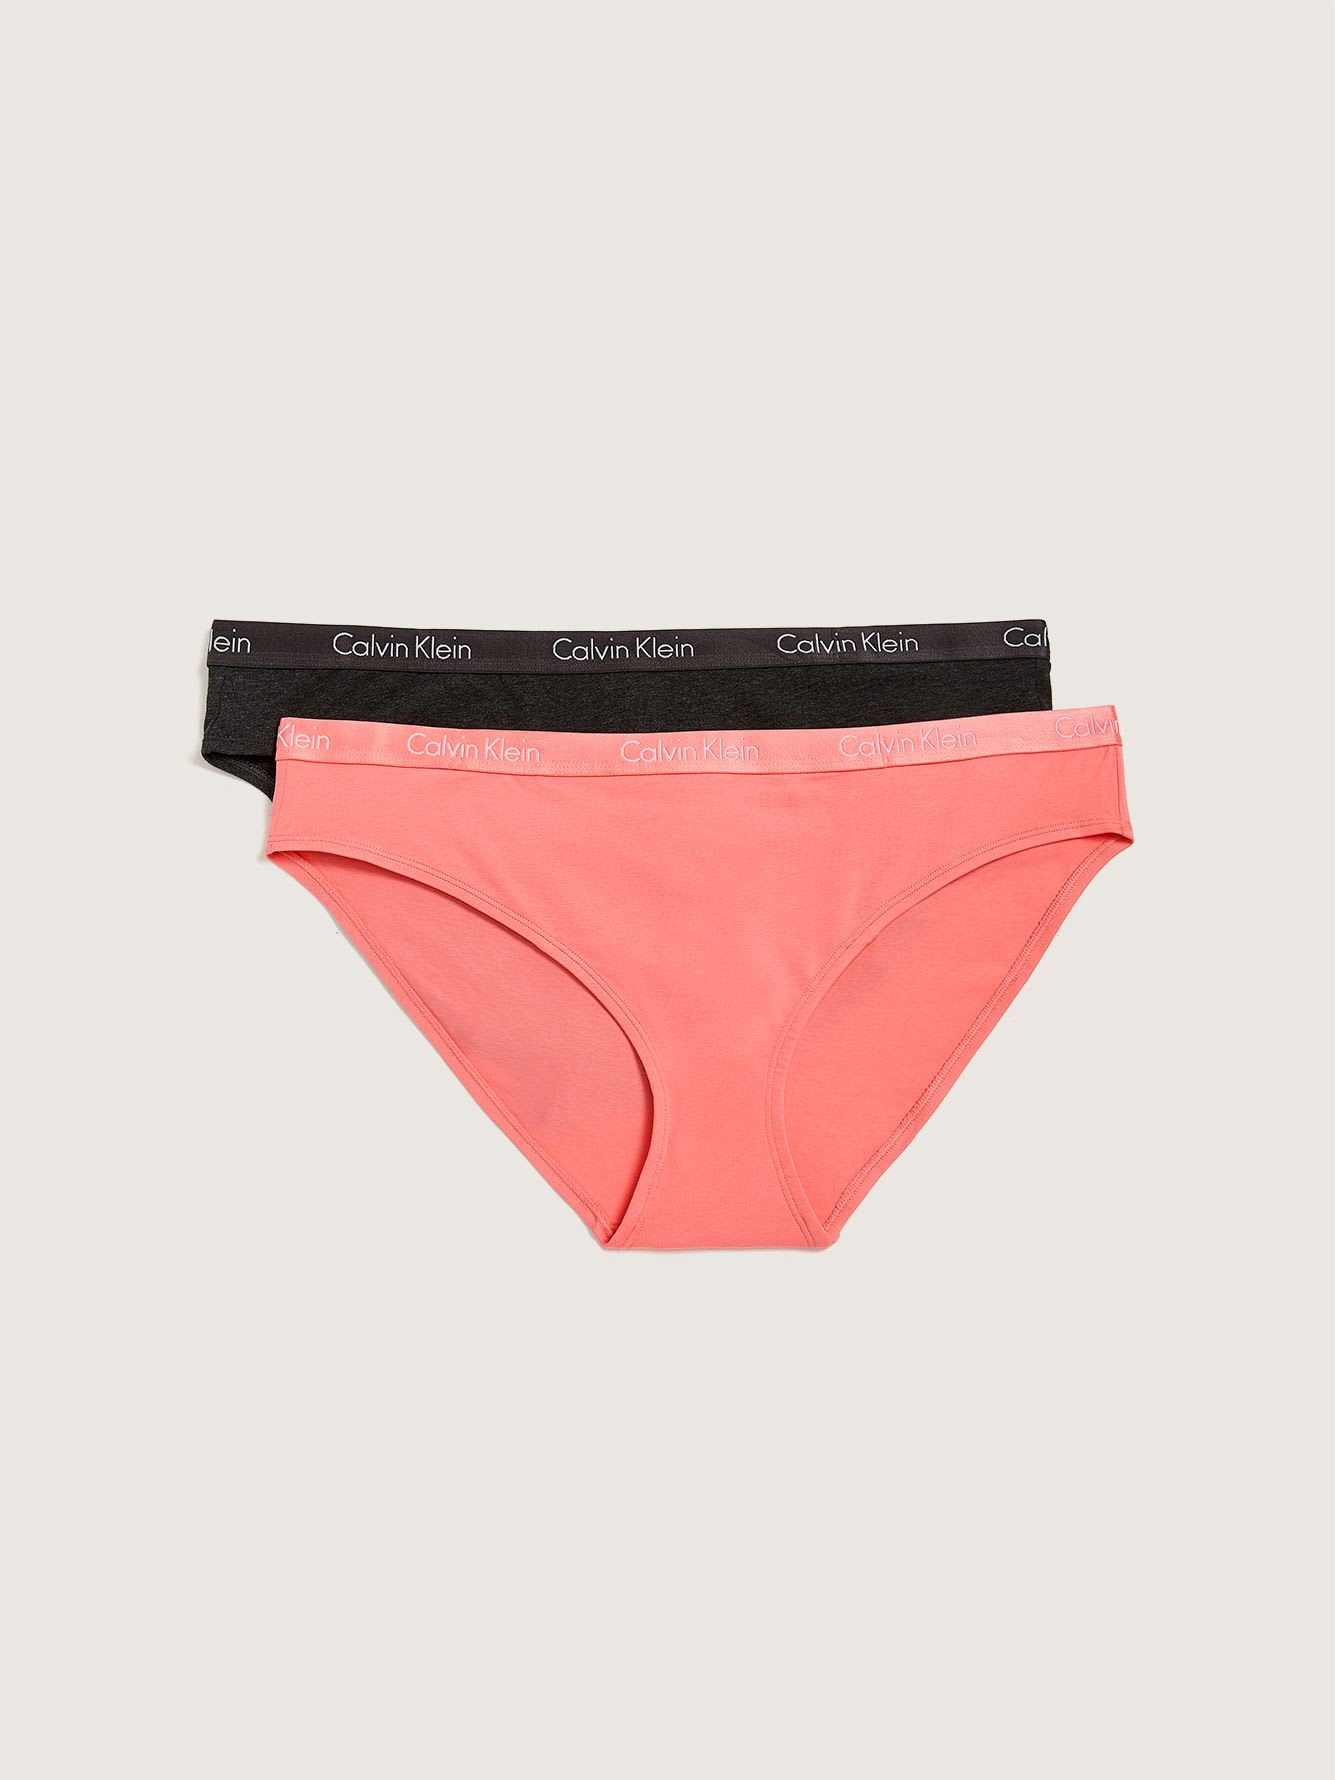 Cotton Bikini Brief, 2-Pack - Calvin Klein